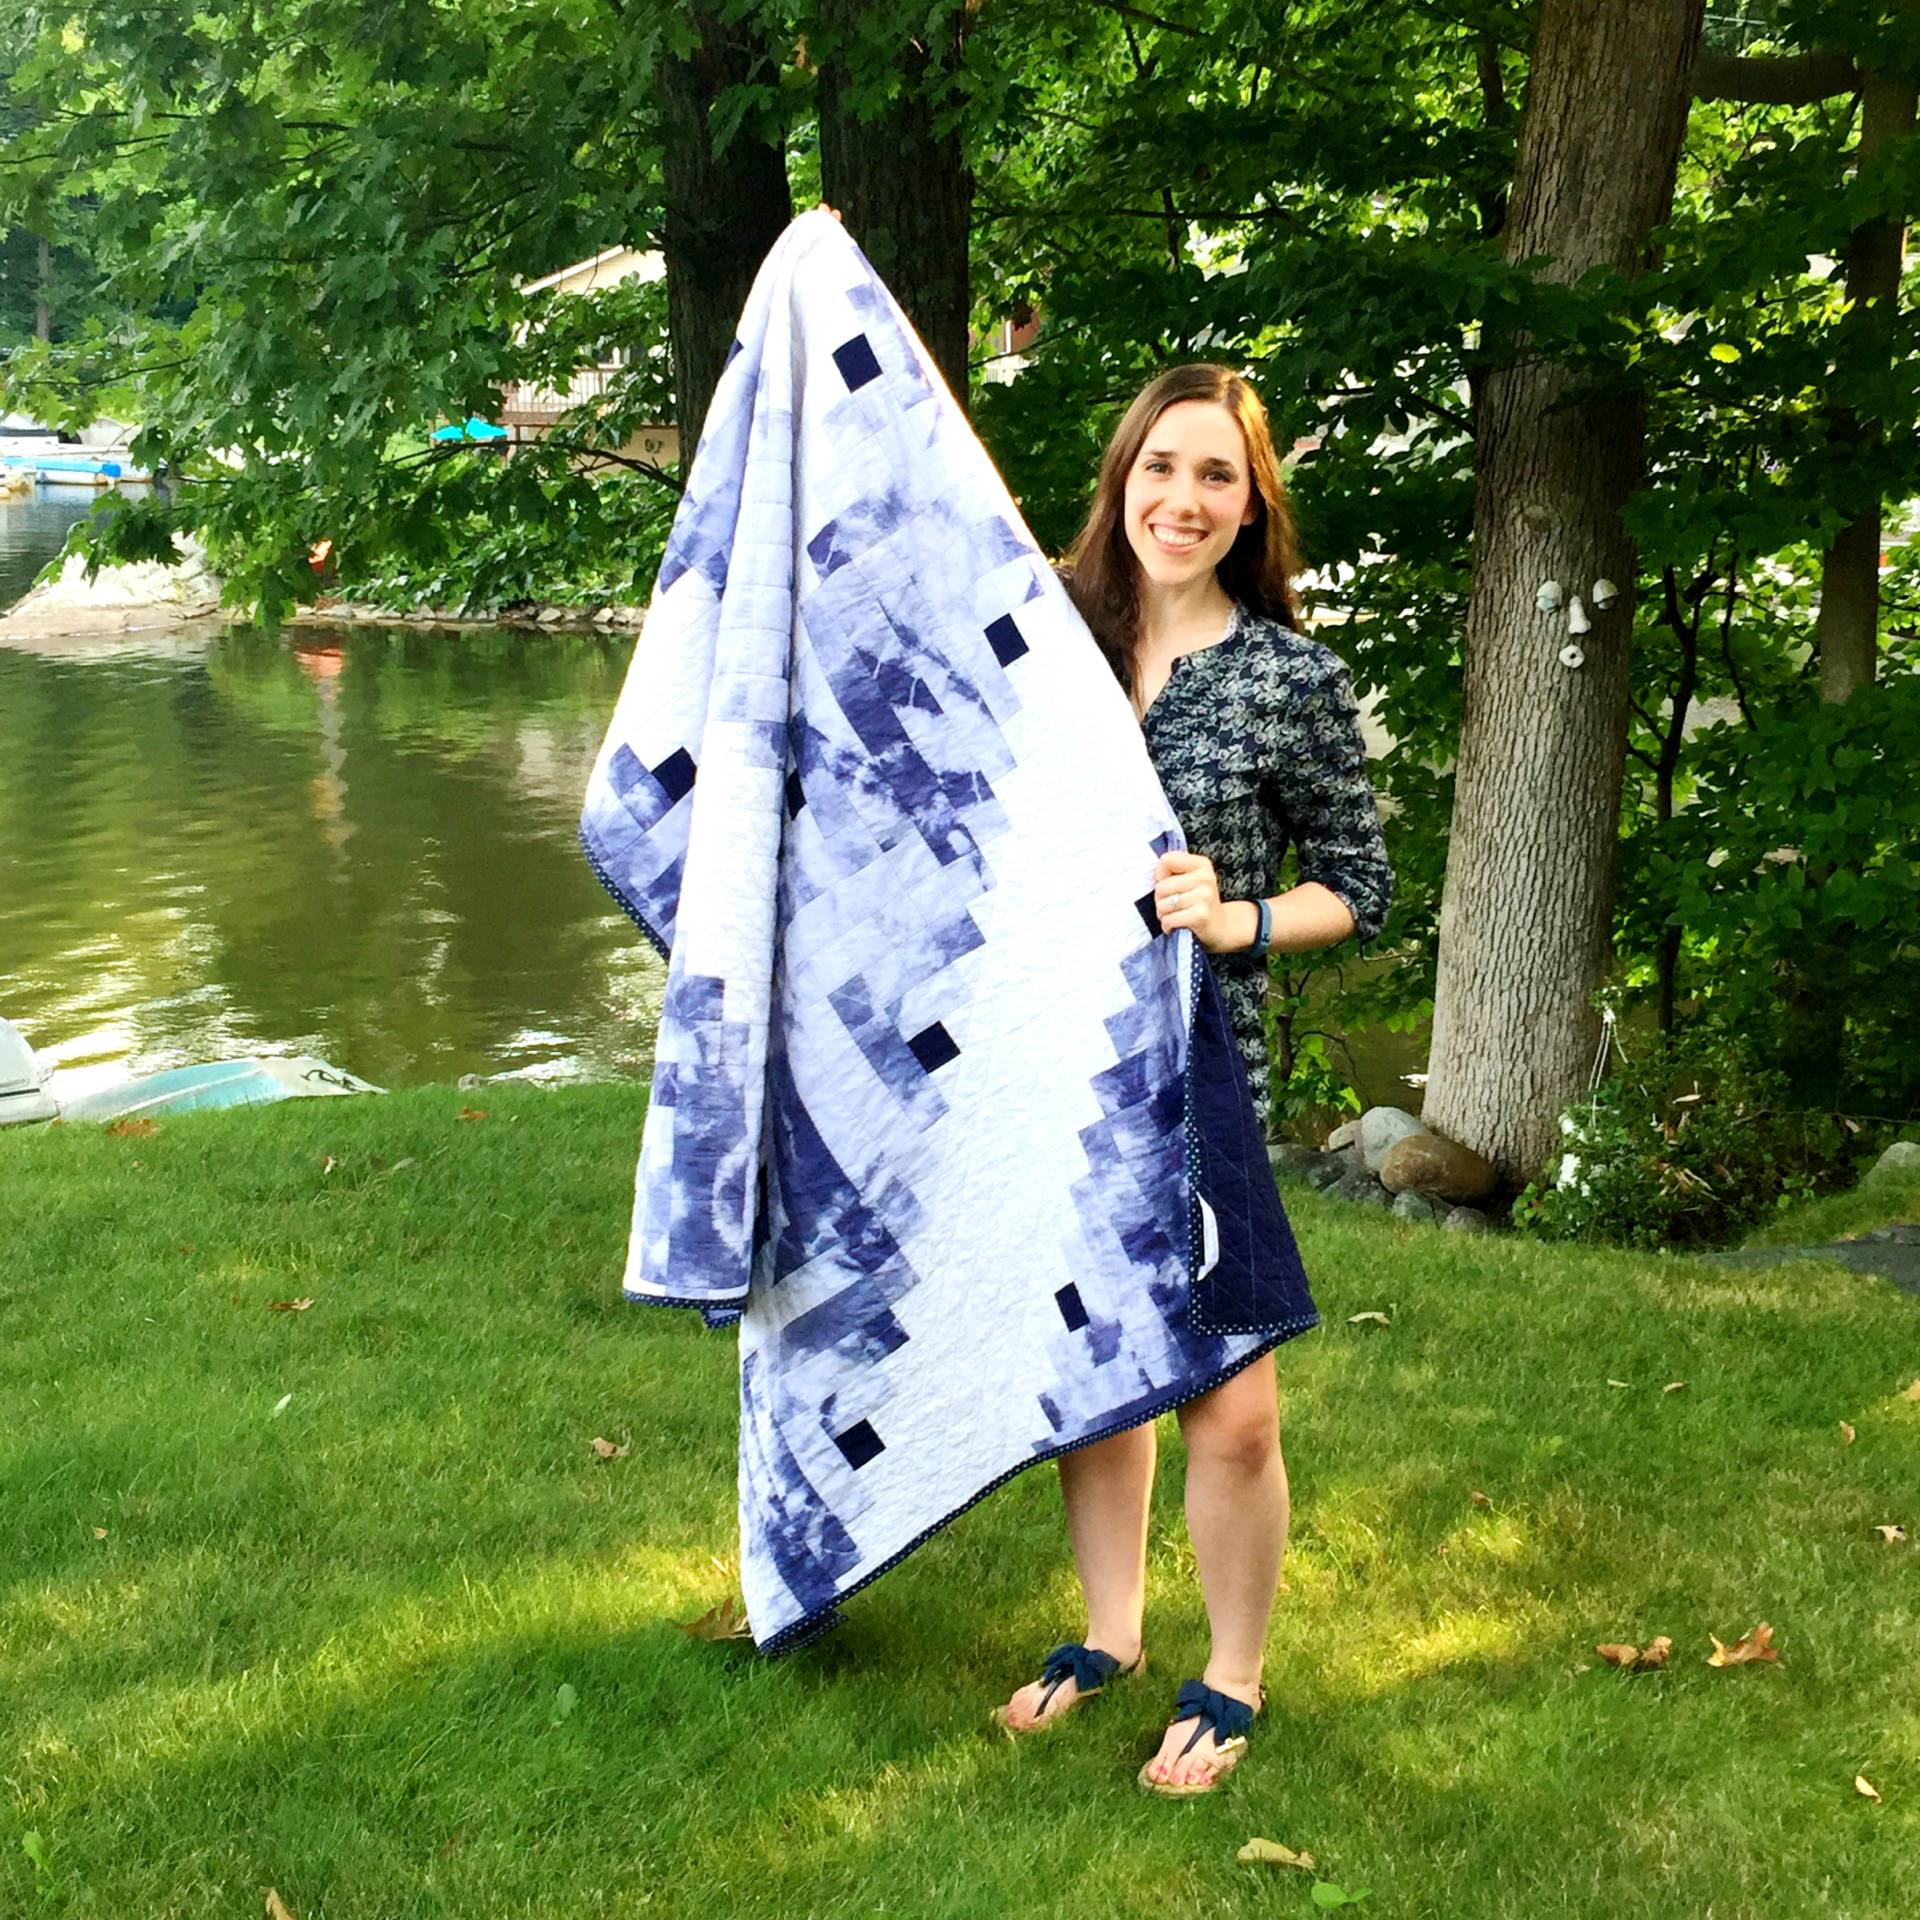 Finished shibori tie dye quilt log cabin pattern